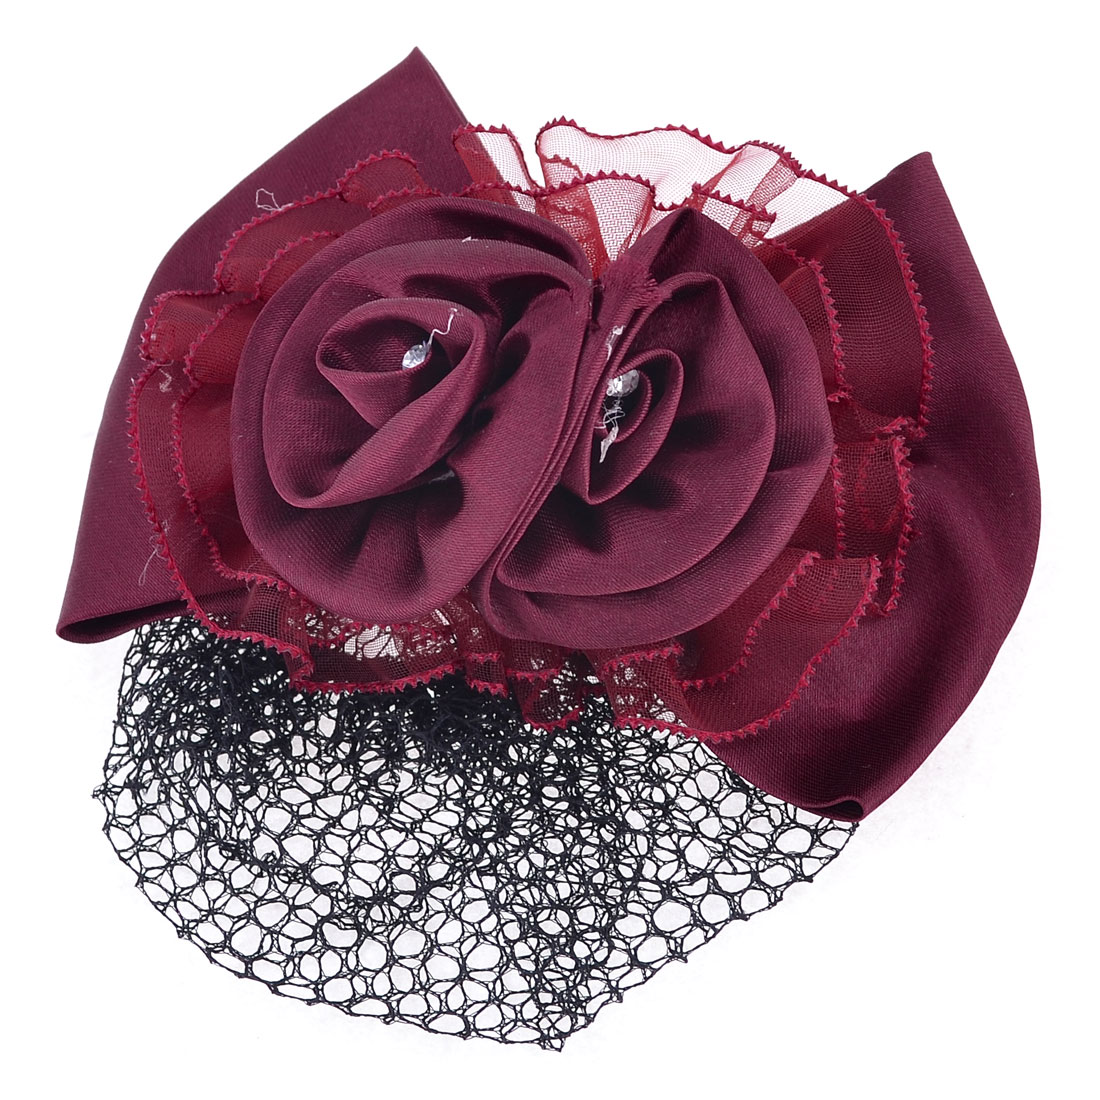 Bowknot Floral Decor Barrette French Metal Hair Clip Burgundy w Net Snood